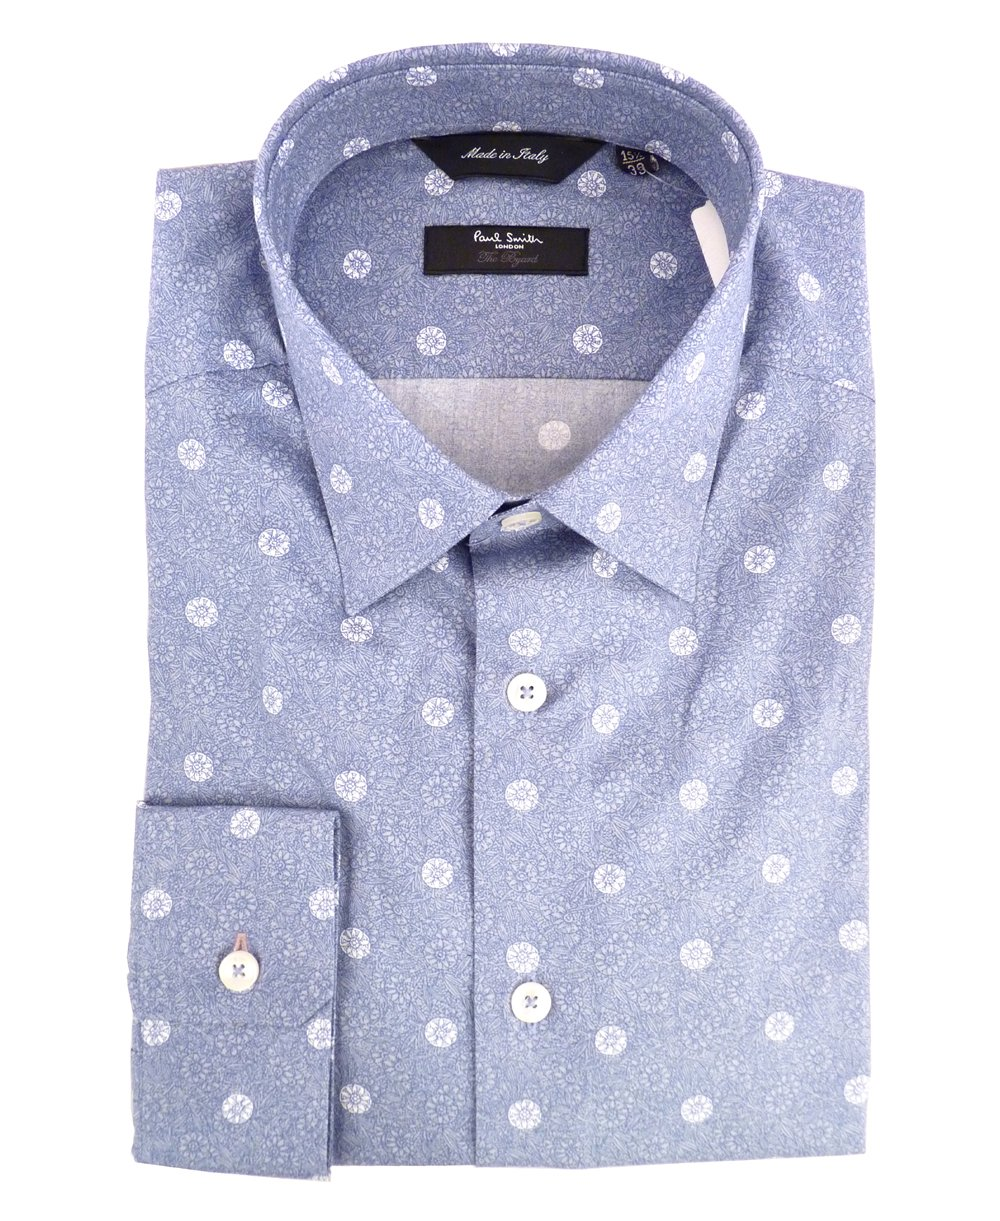 Gents 80% cotton 20% polyester top dyed yarn woven with full color fastness with one chest pocket and stand up collars full sleeves shirt with with three inch width .